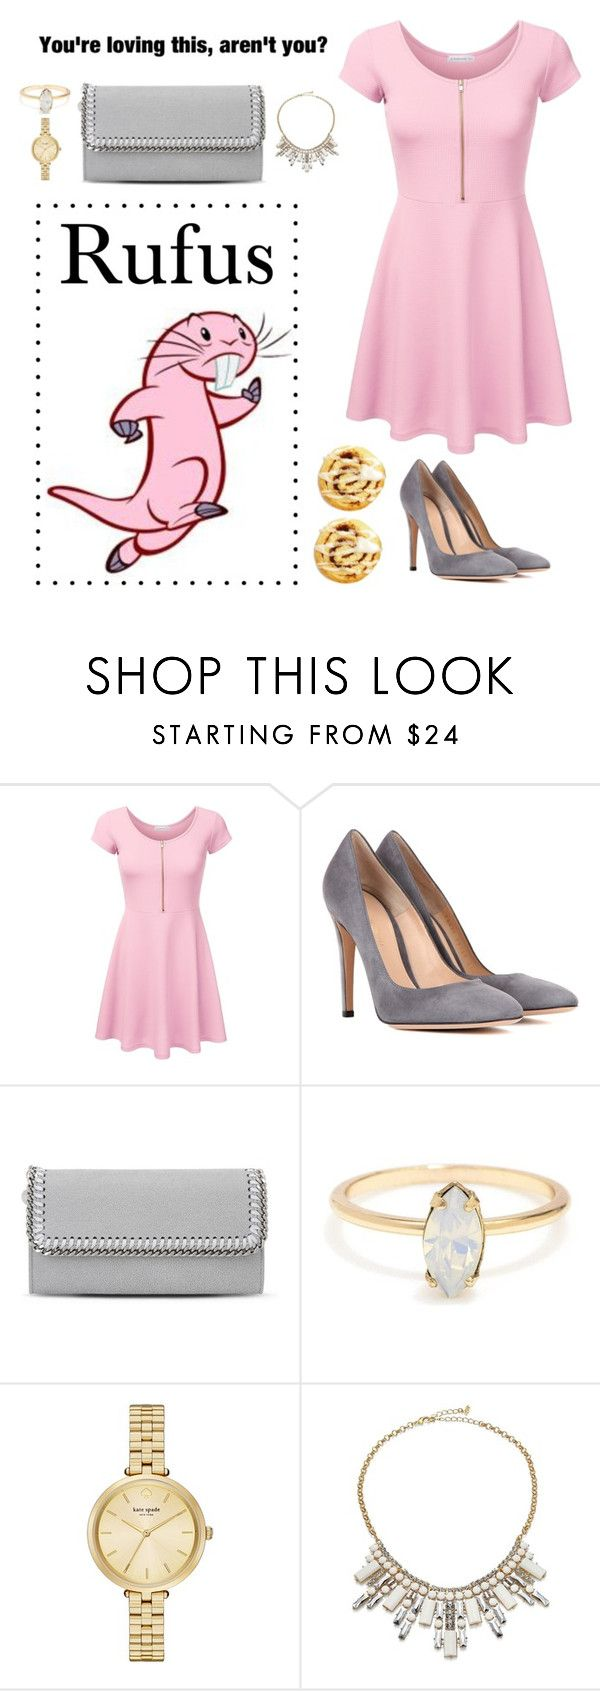 """Rufus from Kim Possible"" by oliviagsu ❤ liked on Polyvore featuring Gianvito Rossi, STELLA McCARTNEY, Kate Spade and ABS by Allen Schwartz"